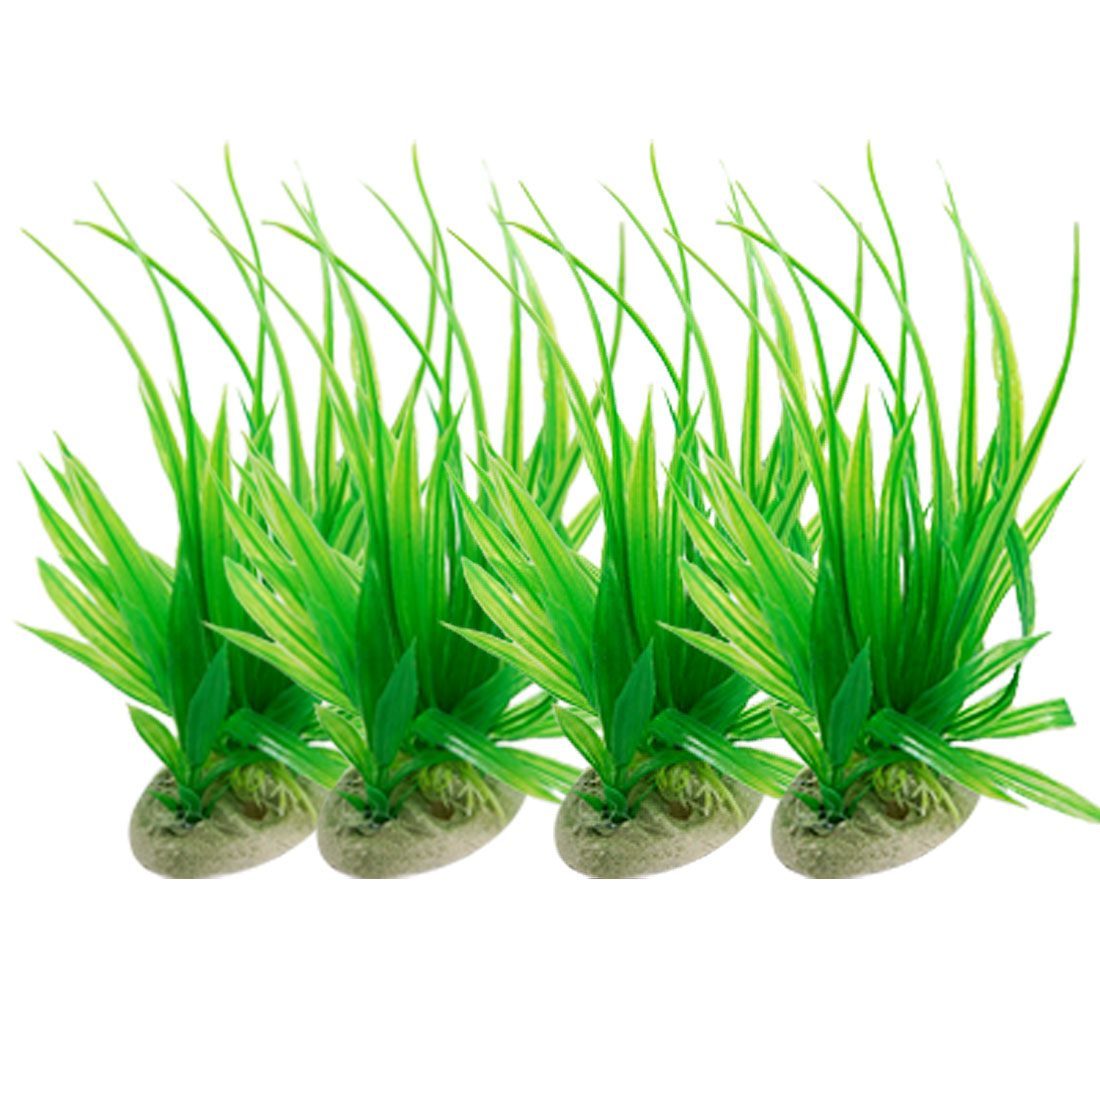 4 Pcs Aquarium Landscaping Long Leaf Green Plastic Plants w Base